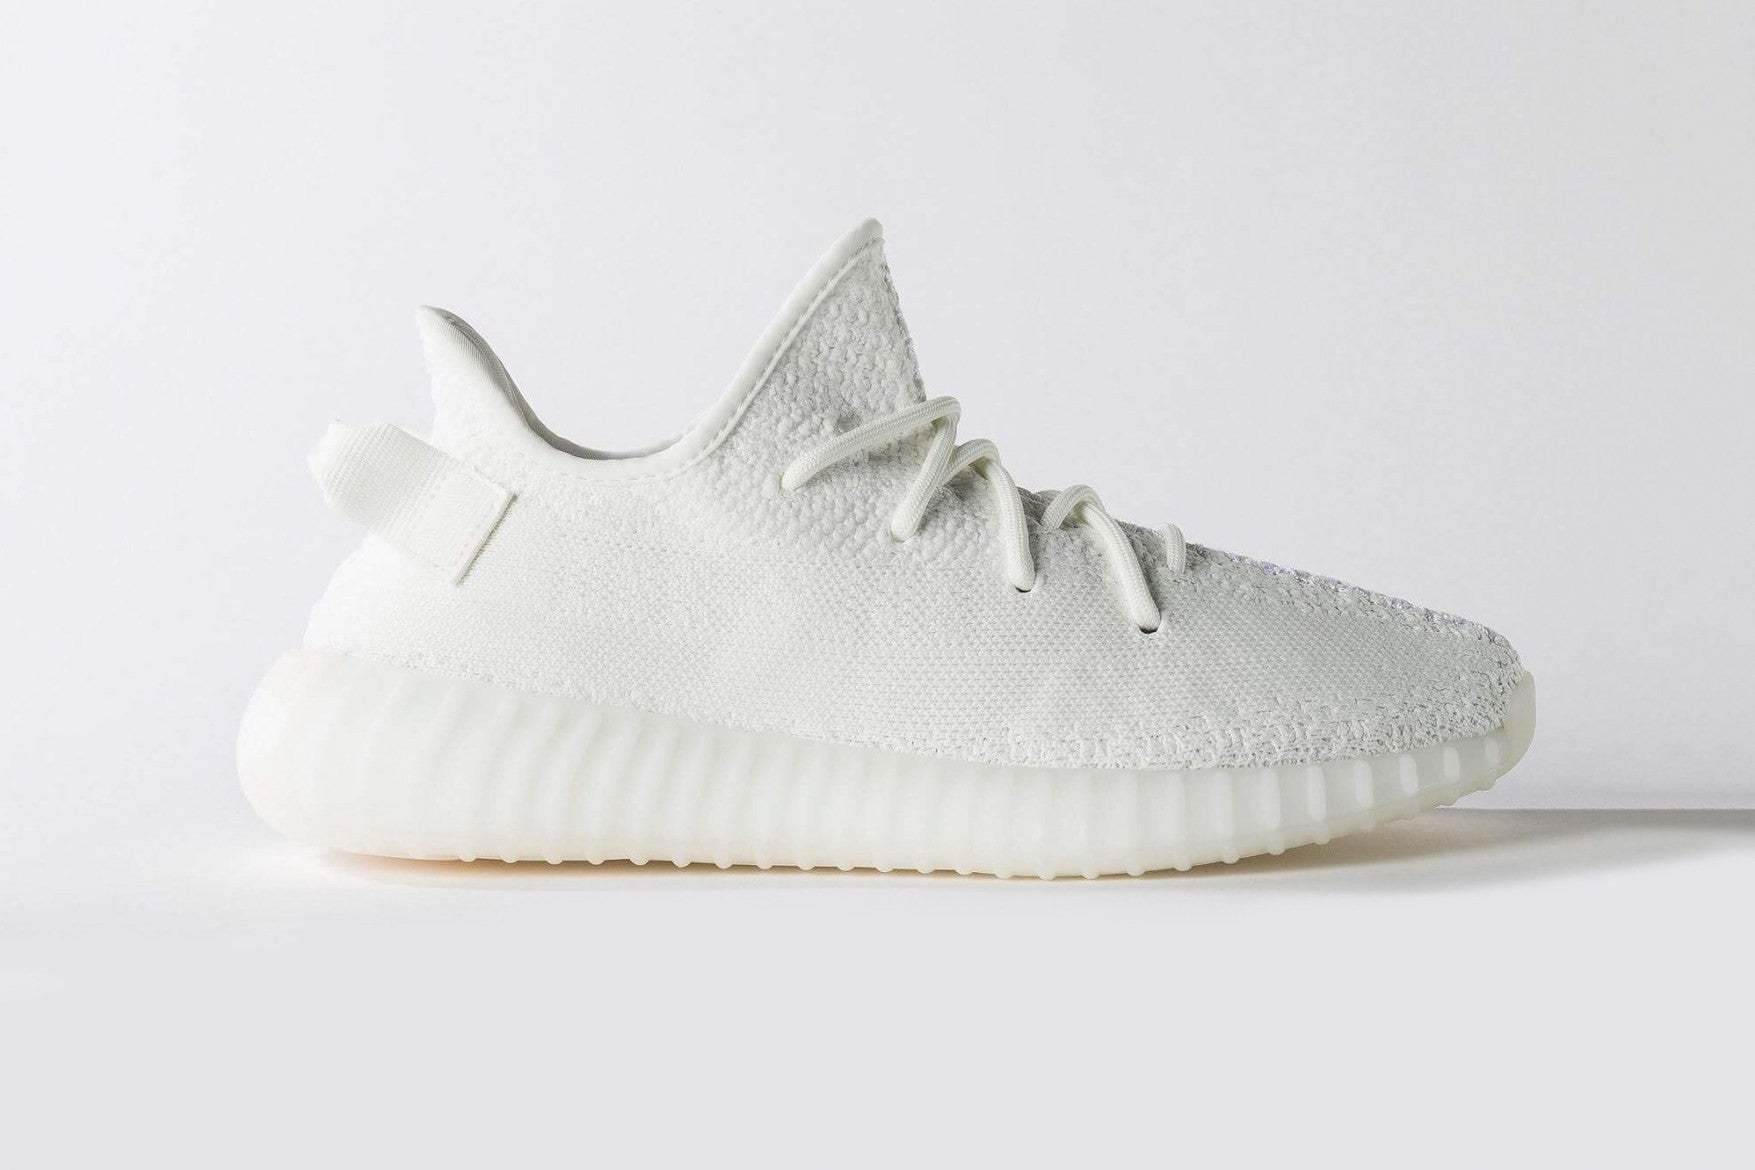 new arrival 0a5c1 c3172 sneakerseradidas-yeezy-boost-350-v2-cream-release-date-1sneakerser.jpgv1490276552